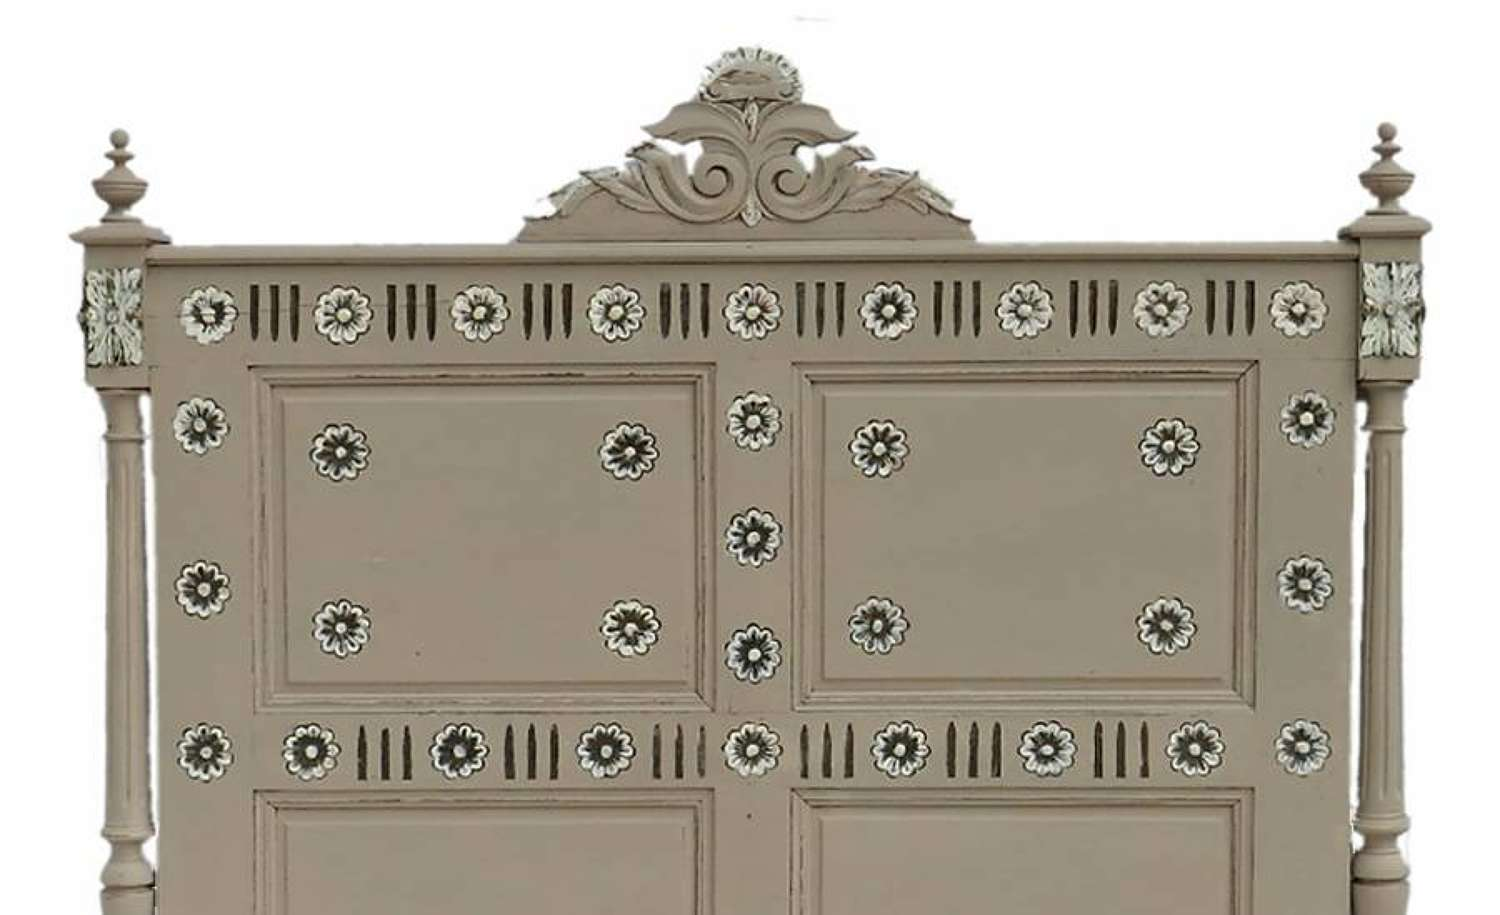 C19 French Bed Headboard painted